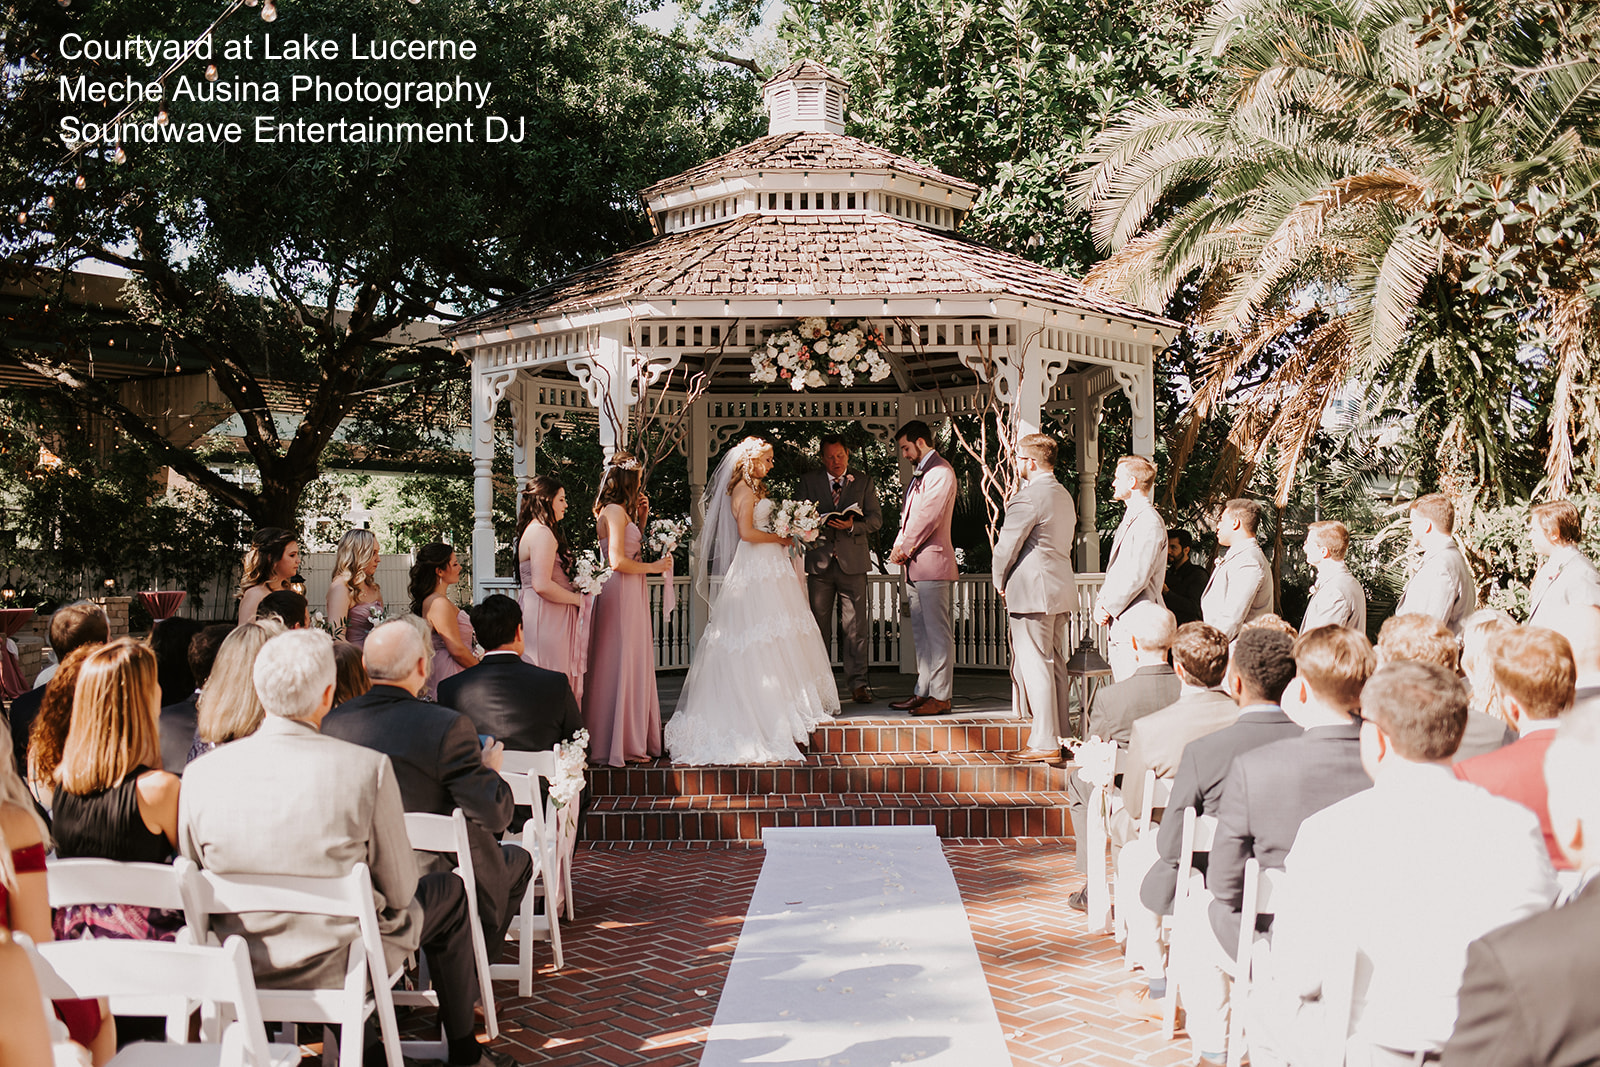 Couryard lake lucerne - orlando dj - orlando djs - orlando wedding dj - soundwave dj